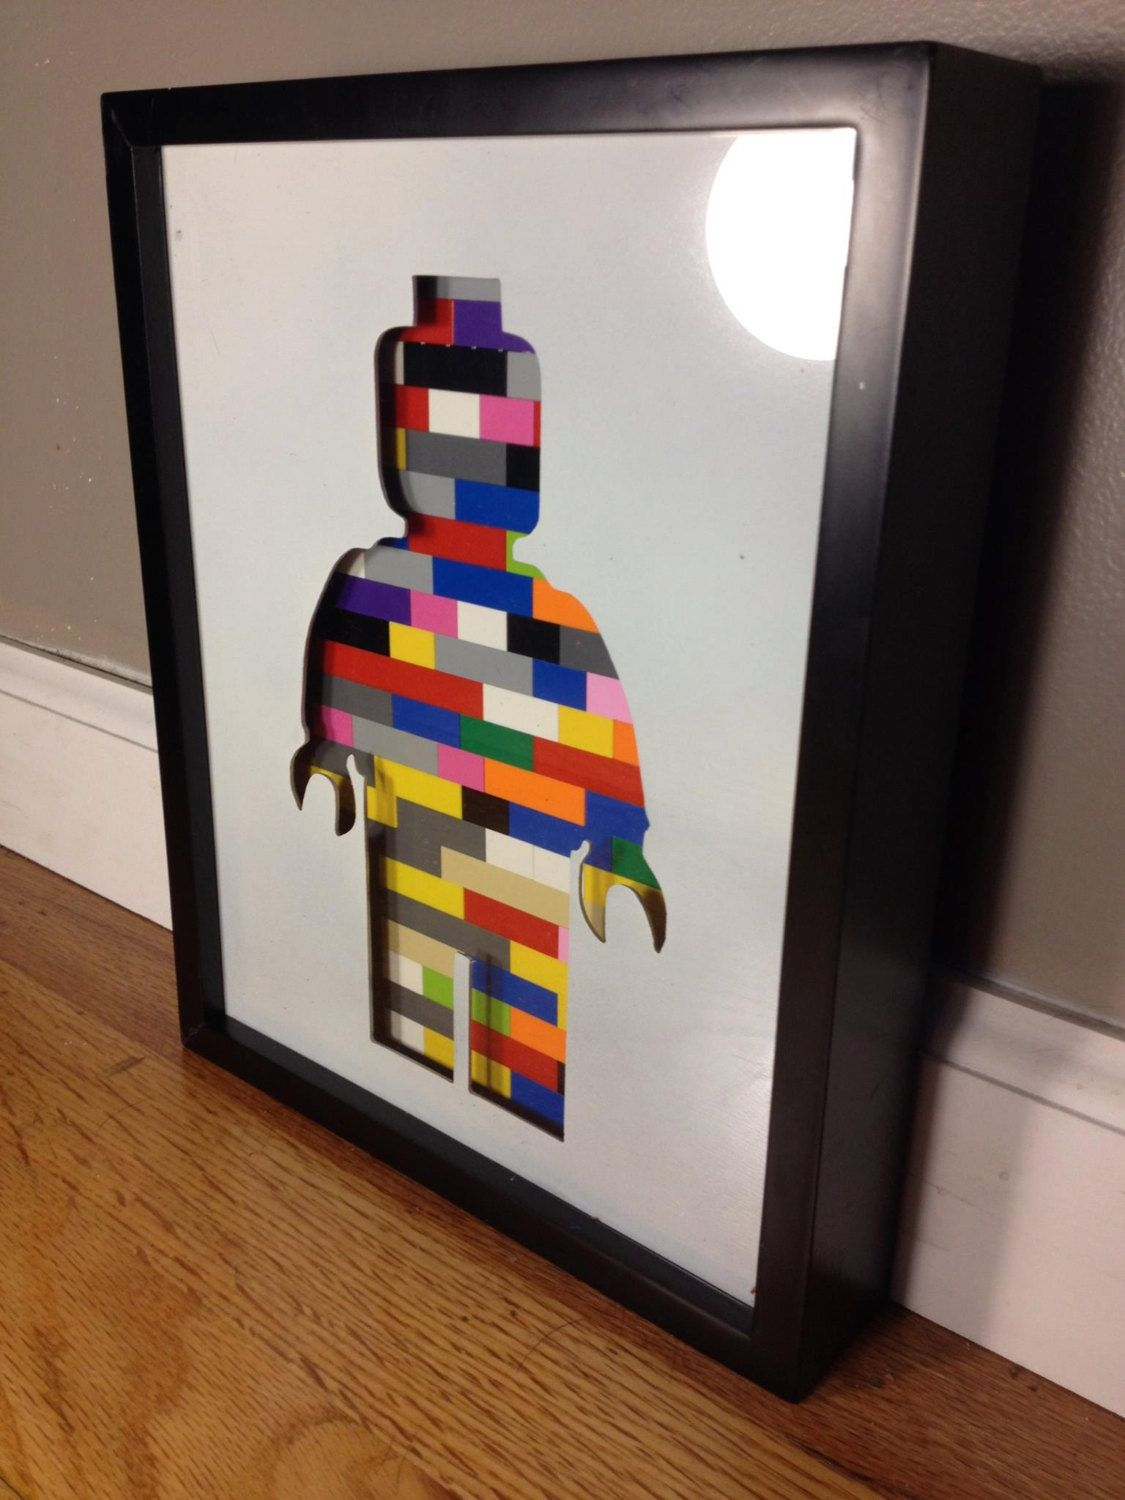 Lego 8 x 10 picture frame Shadow box with a metal insert of a LEGO ® minifig silhouette cutout with multicolored blocks behind & Lego 8 x 10 picture frame: Shadow box with a metal insert of a ... Aboutintivar.Com